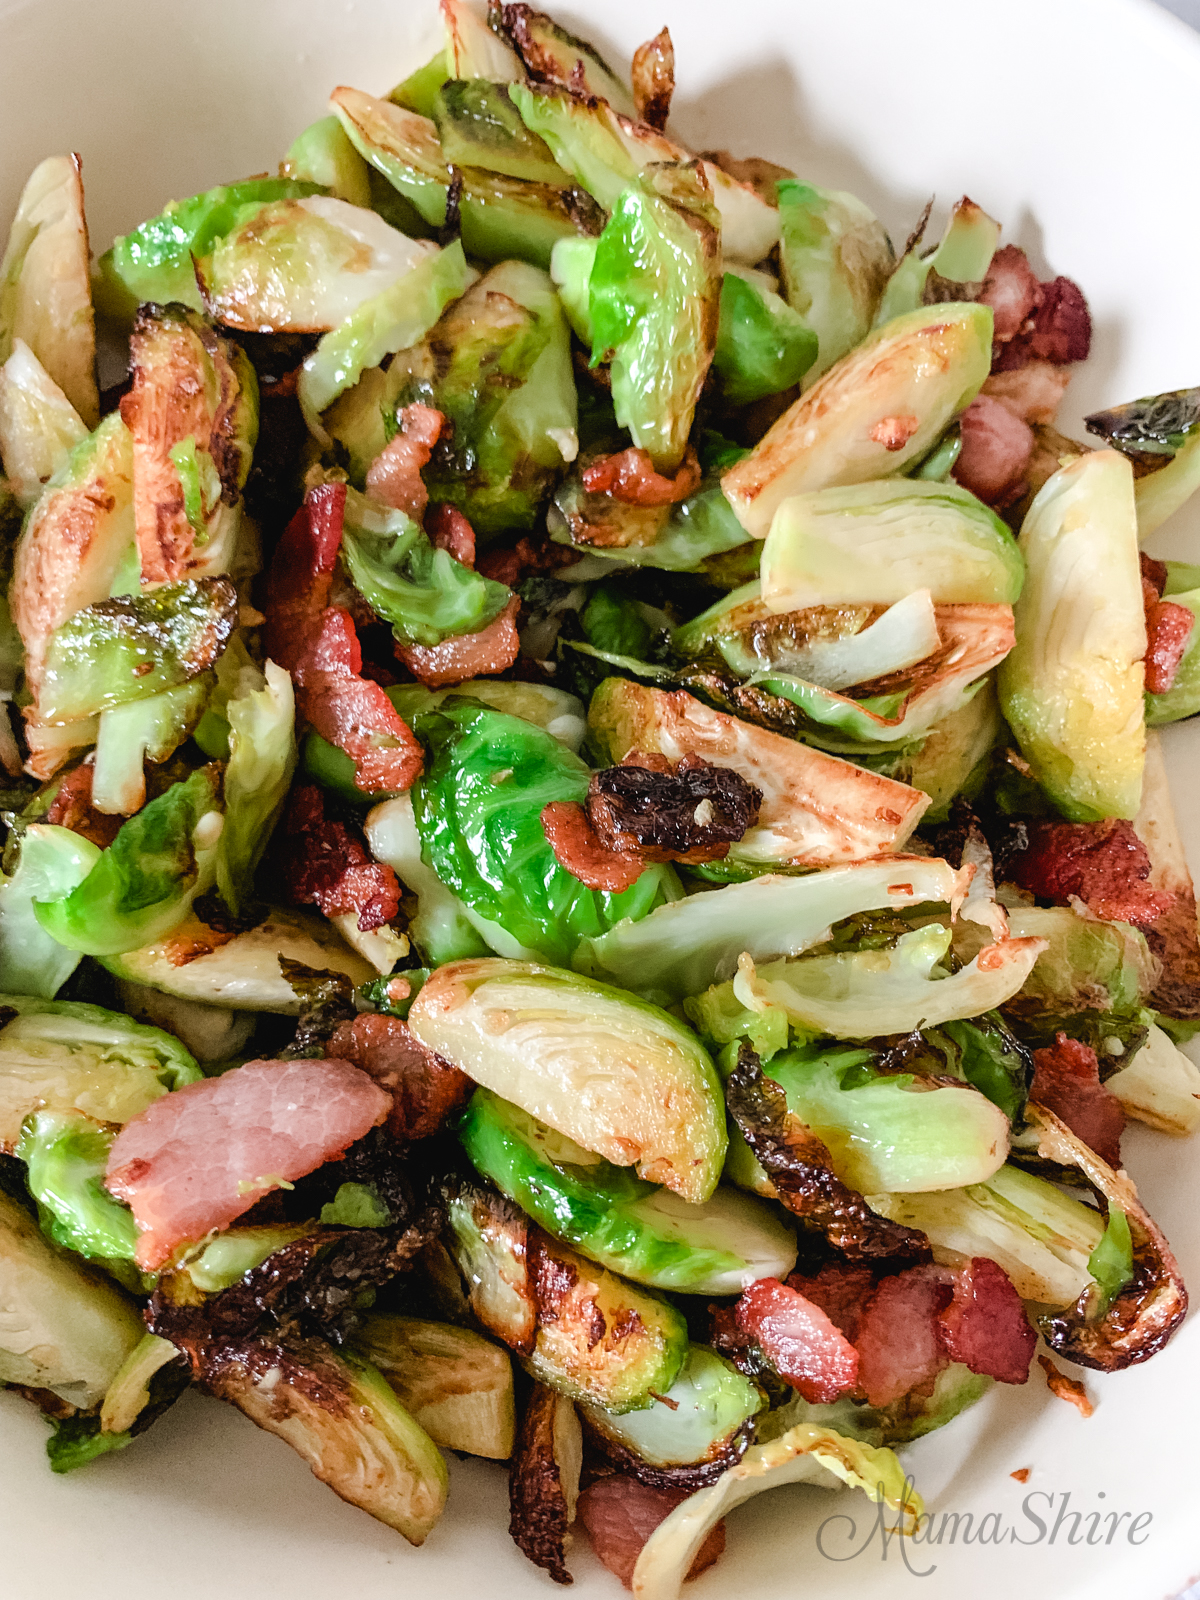 Brussels sprouts in a skillet.